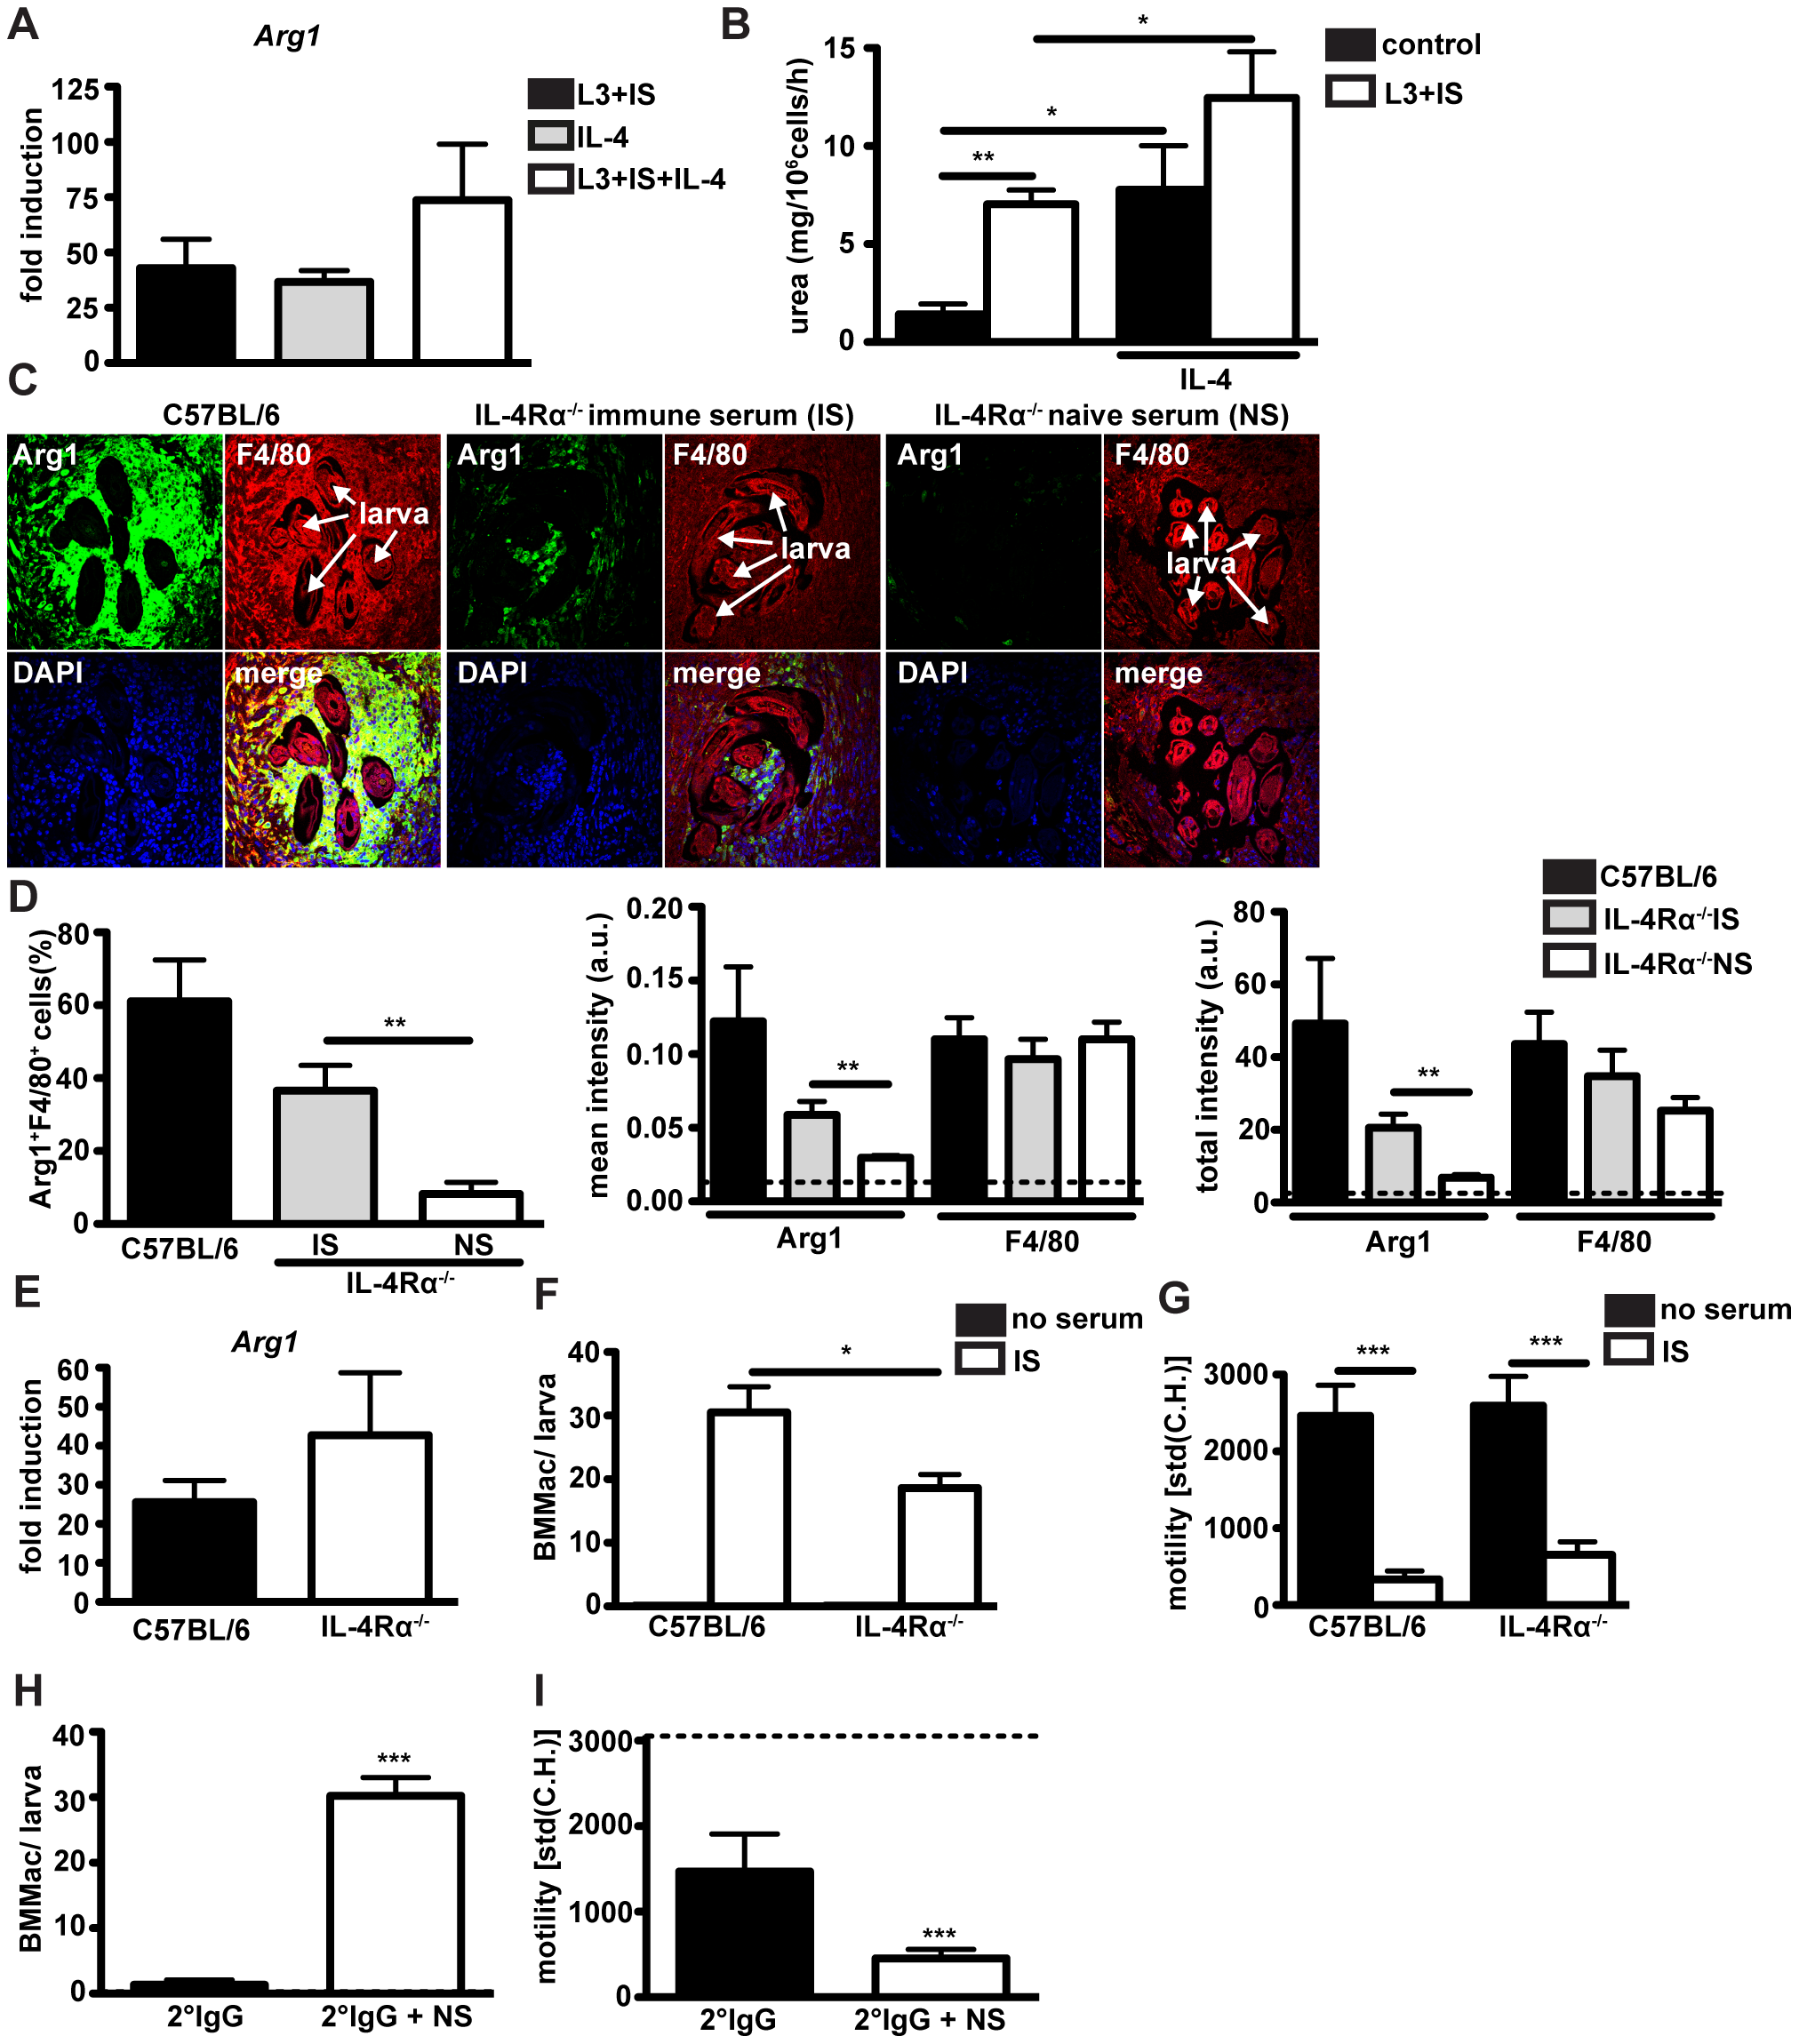 Antibodies can induce Arg1 and larval trapping by macrophages independently of IL-4Ralpha signaling.